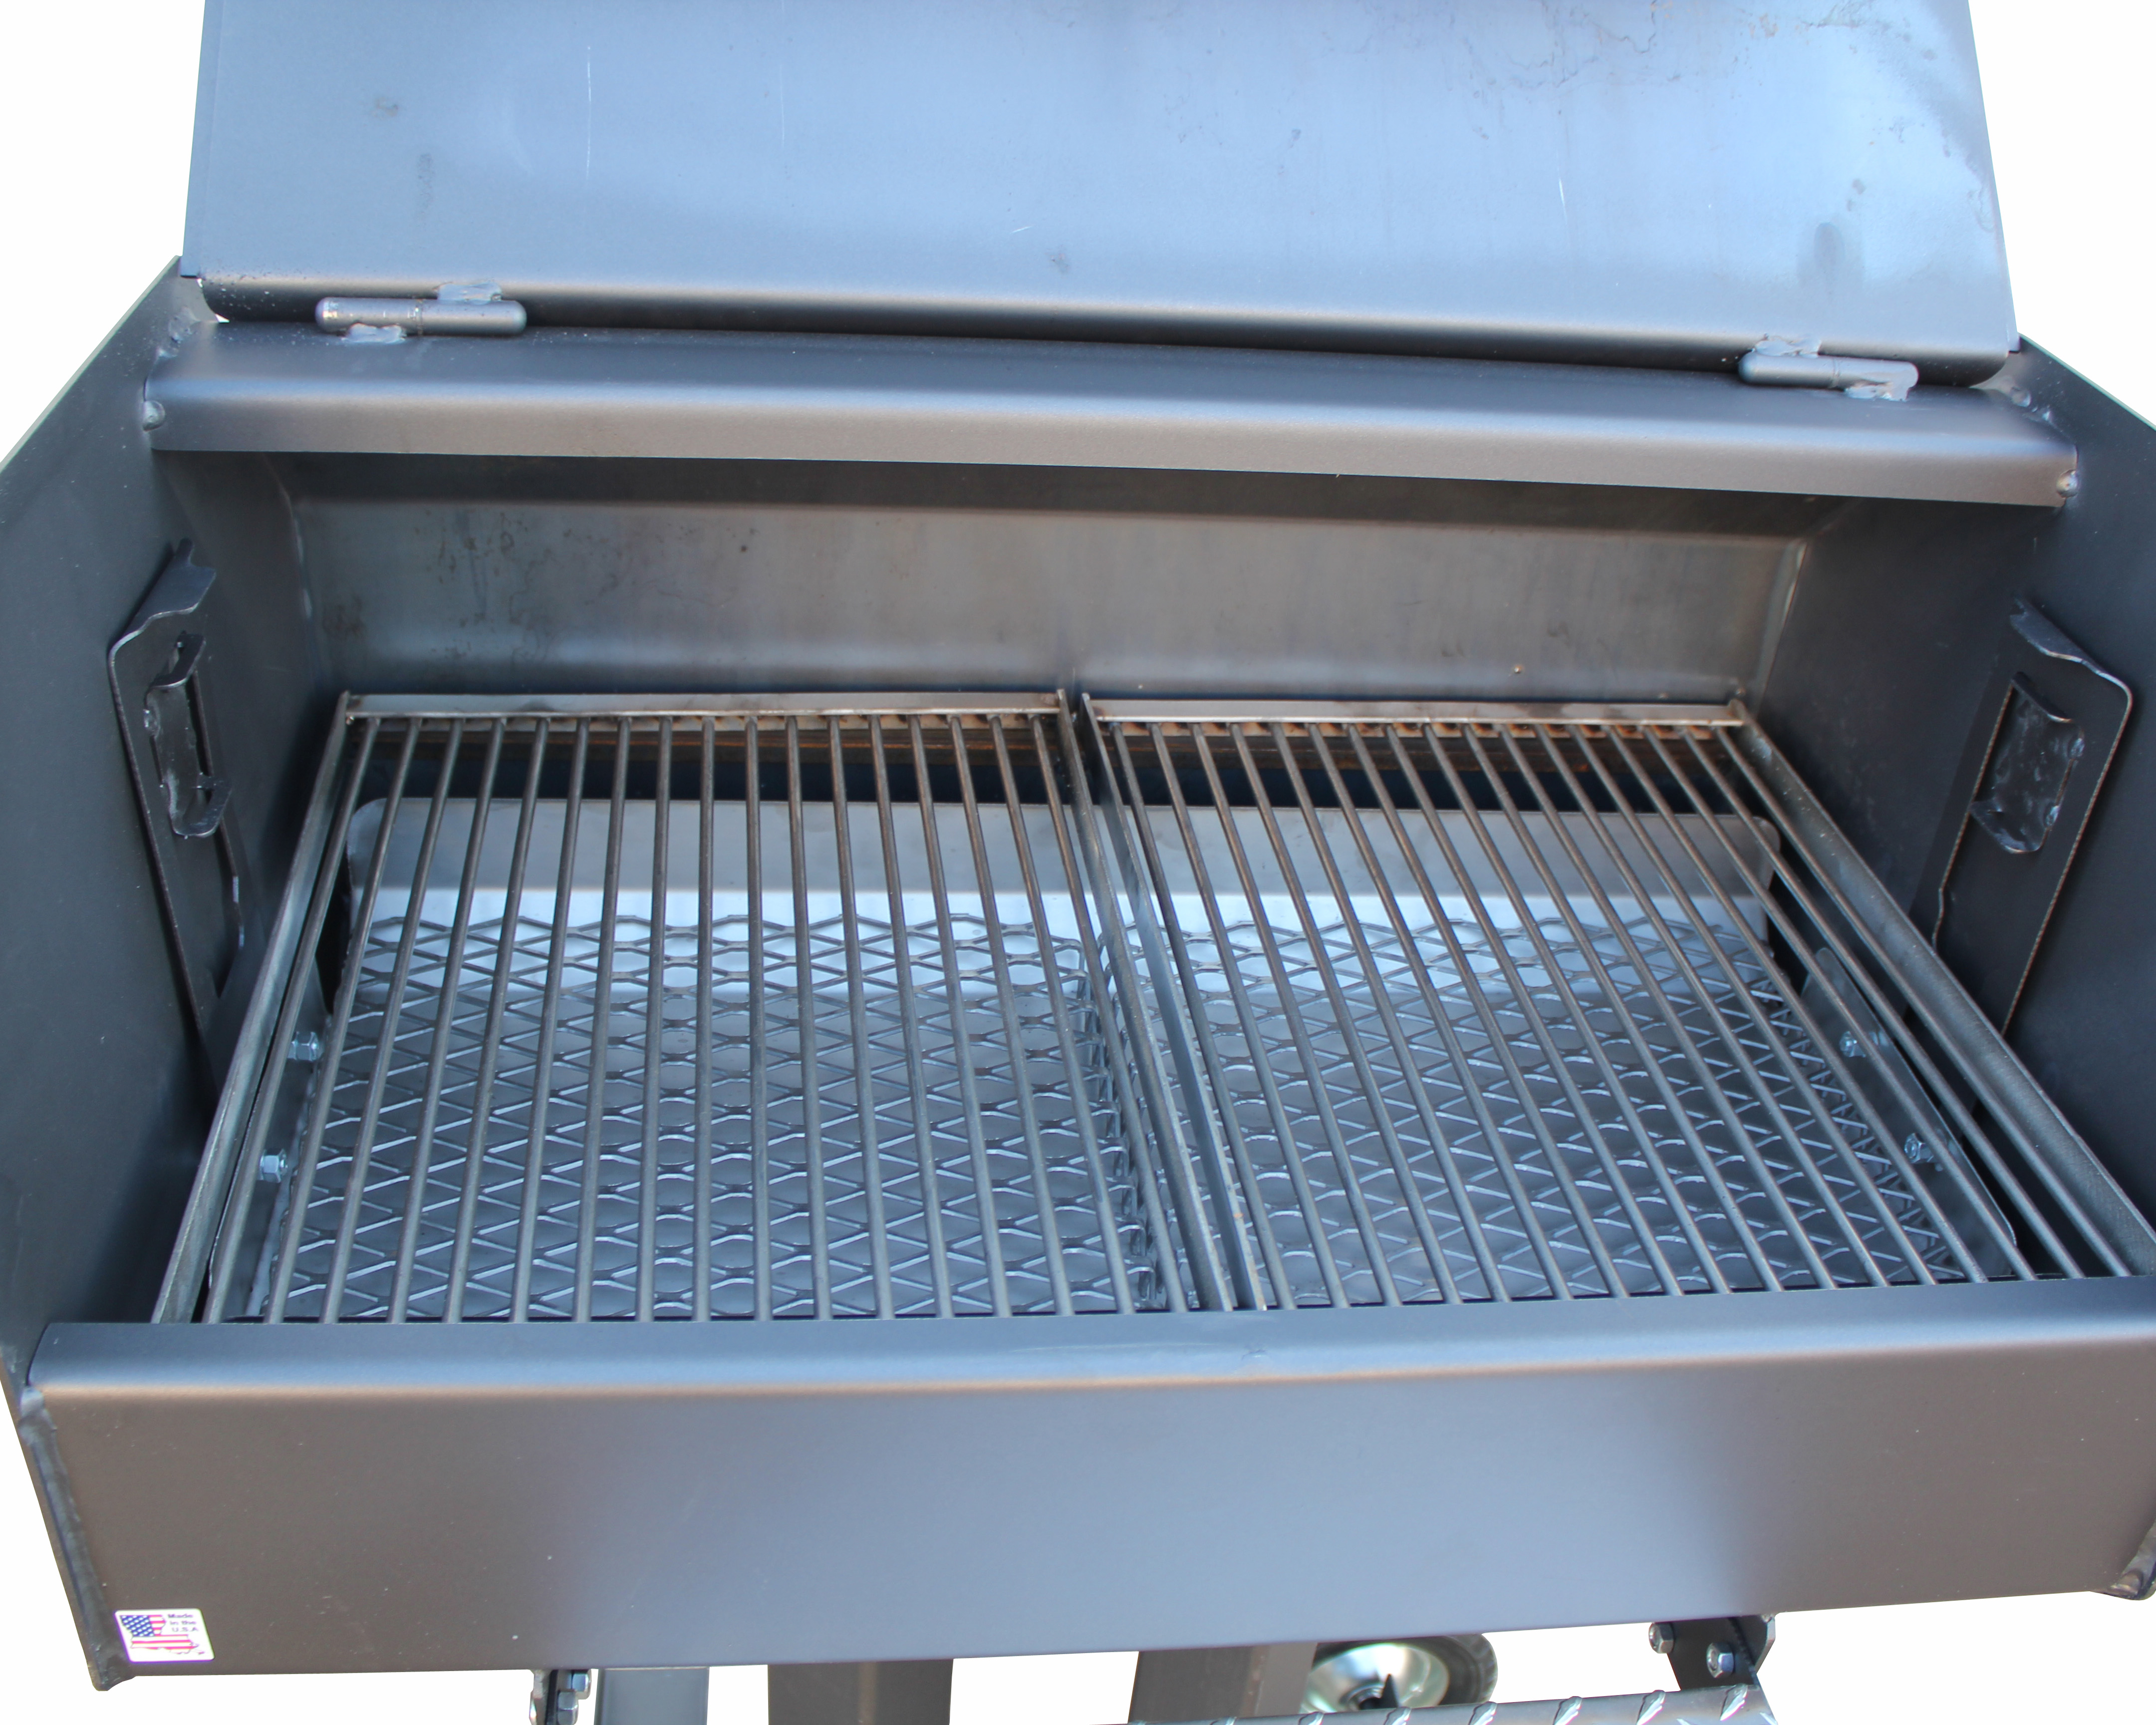 rack clean dirty to grill tec your infrared how grills